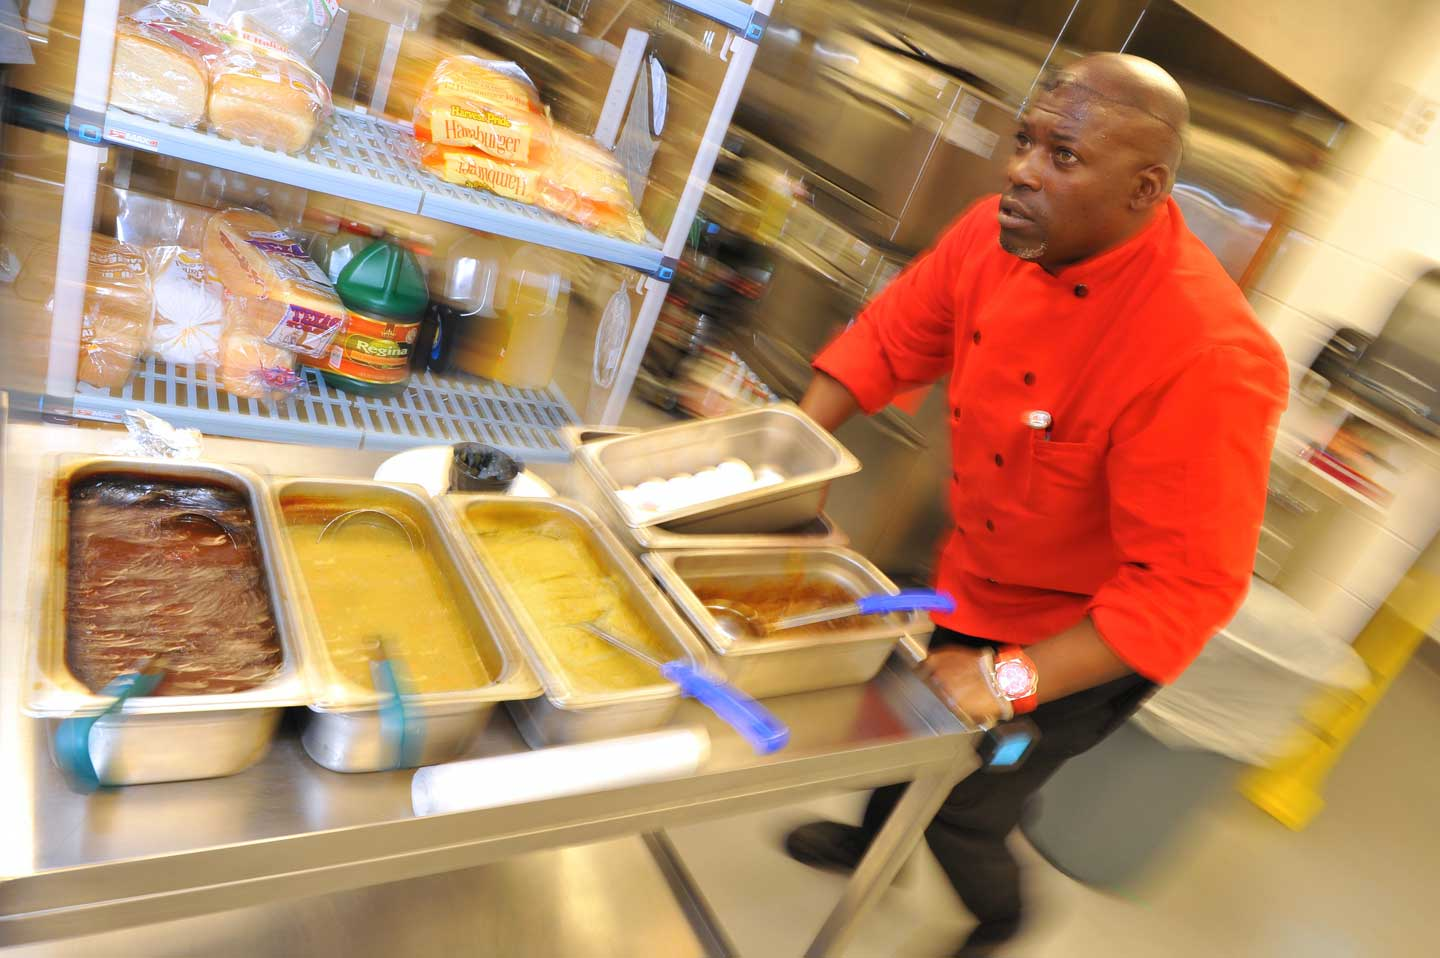 In the hospital's new kitchen, cook Terence Beatty delivers a cart filled with the fixings      for meals being made for arriving patients.